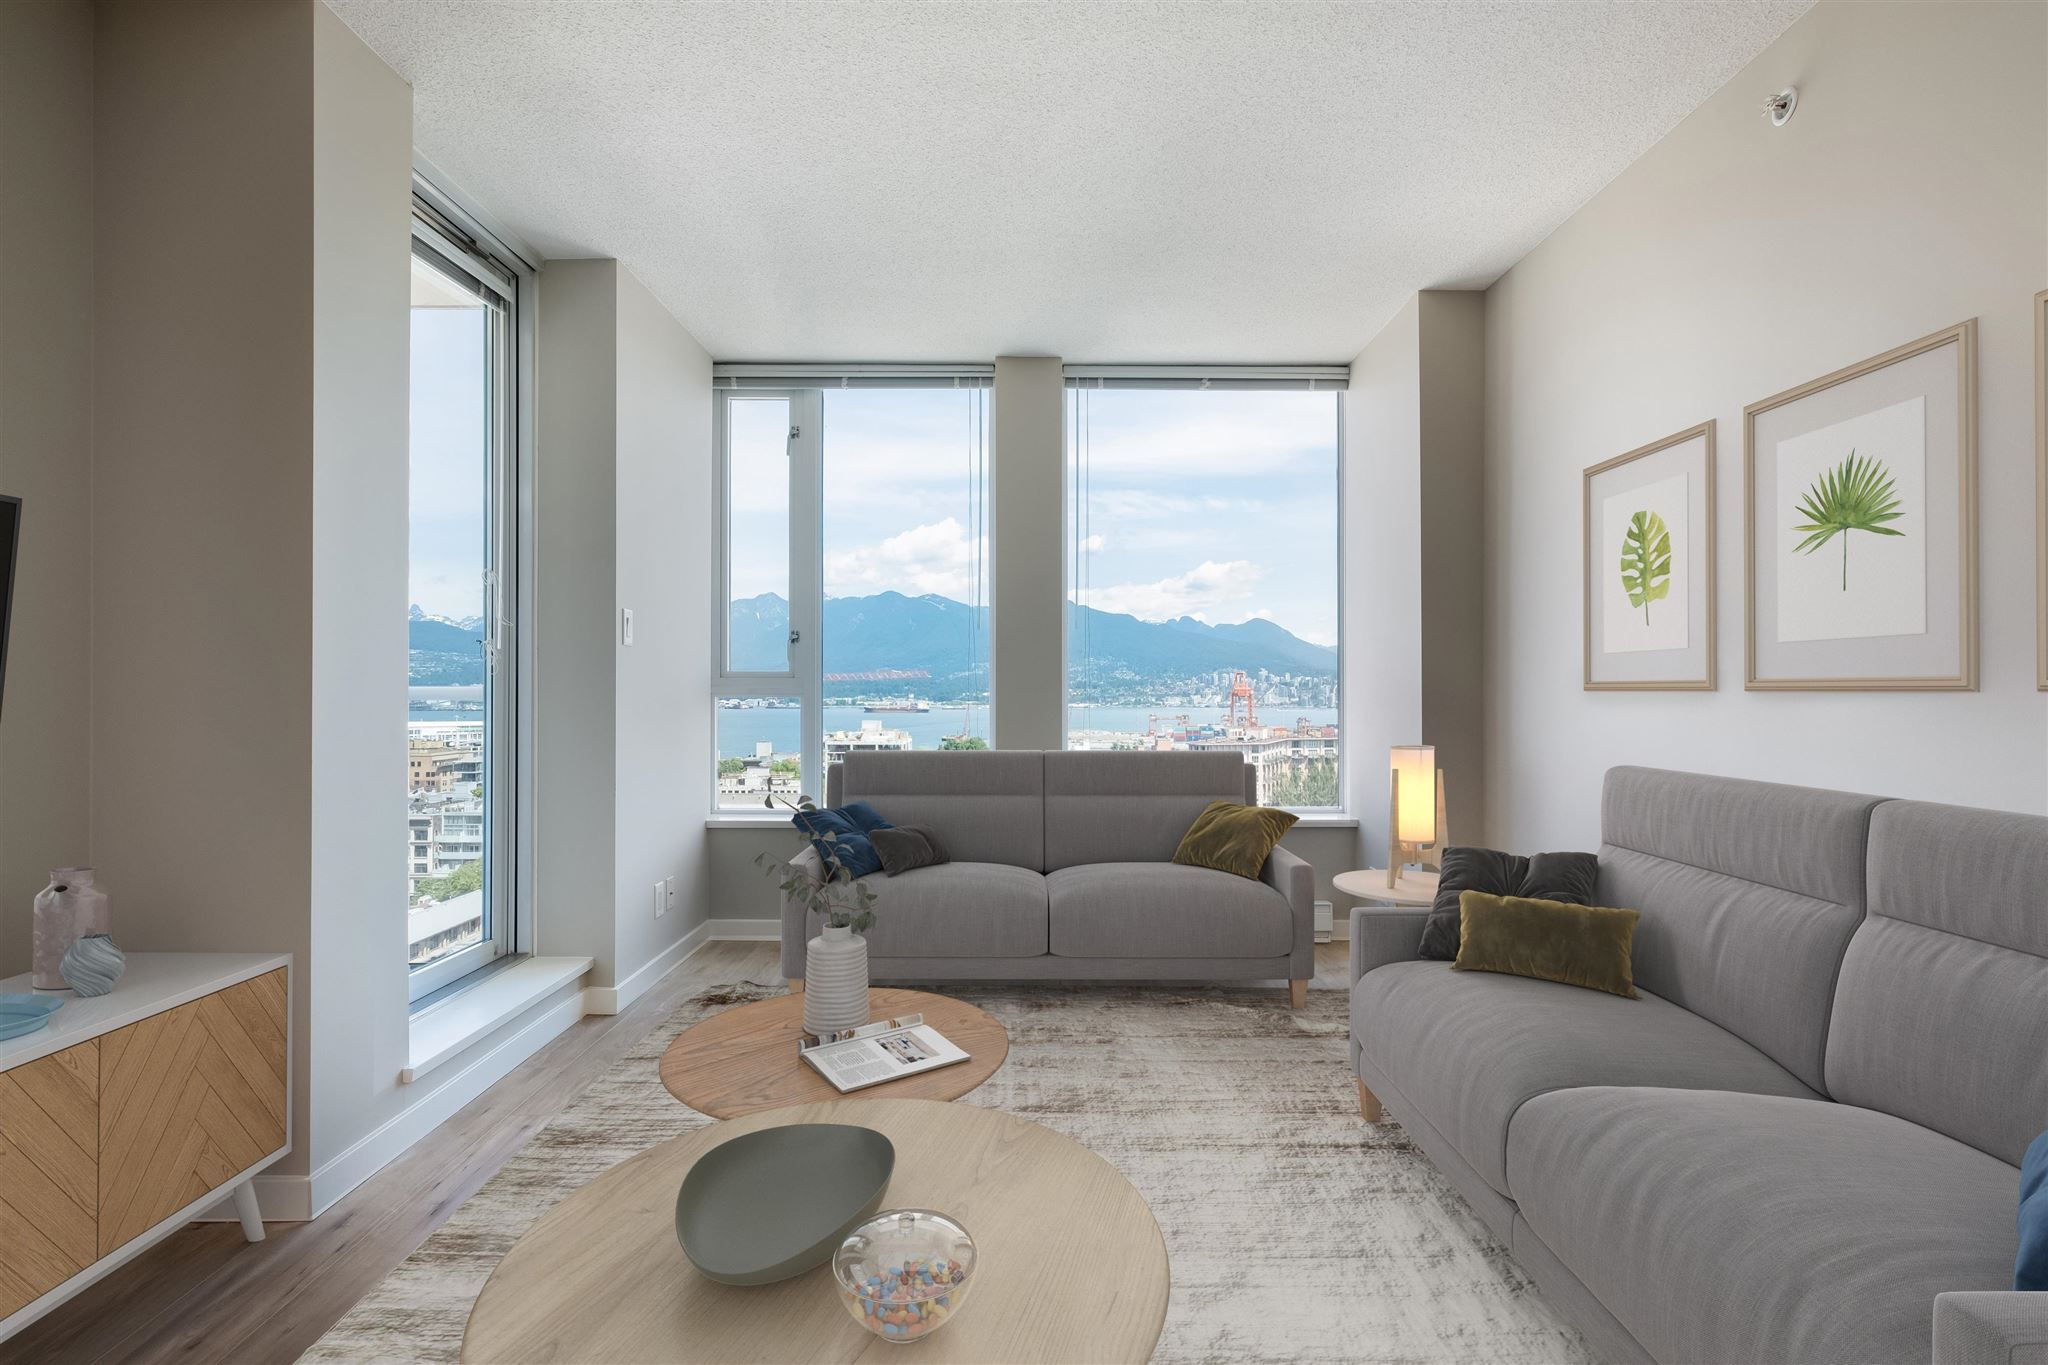 Main Photo: 2106 550 TAYLOR Street in Vancouver: Downtown VW Condo for sale (Vancouver West)  : MLS®# R2602844